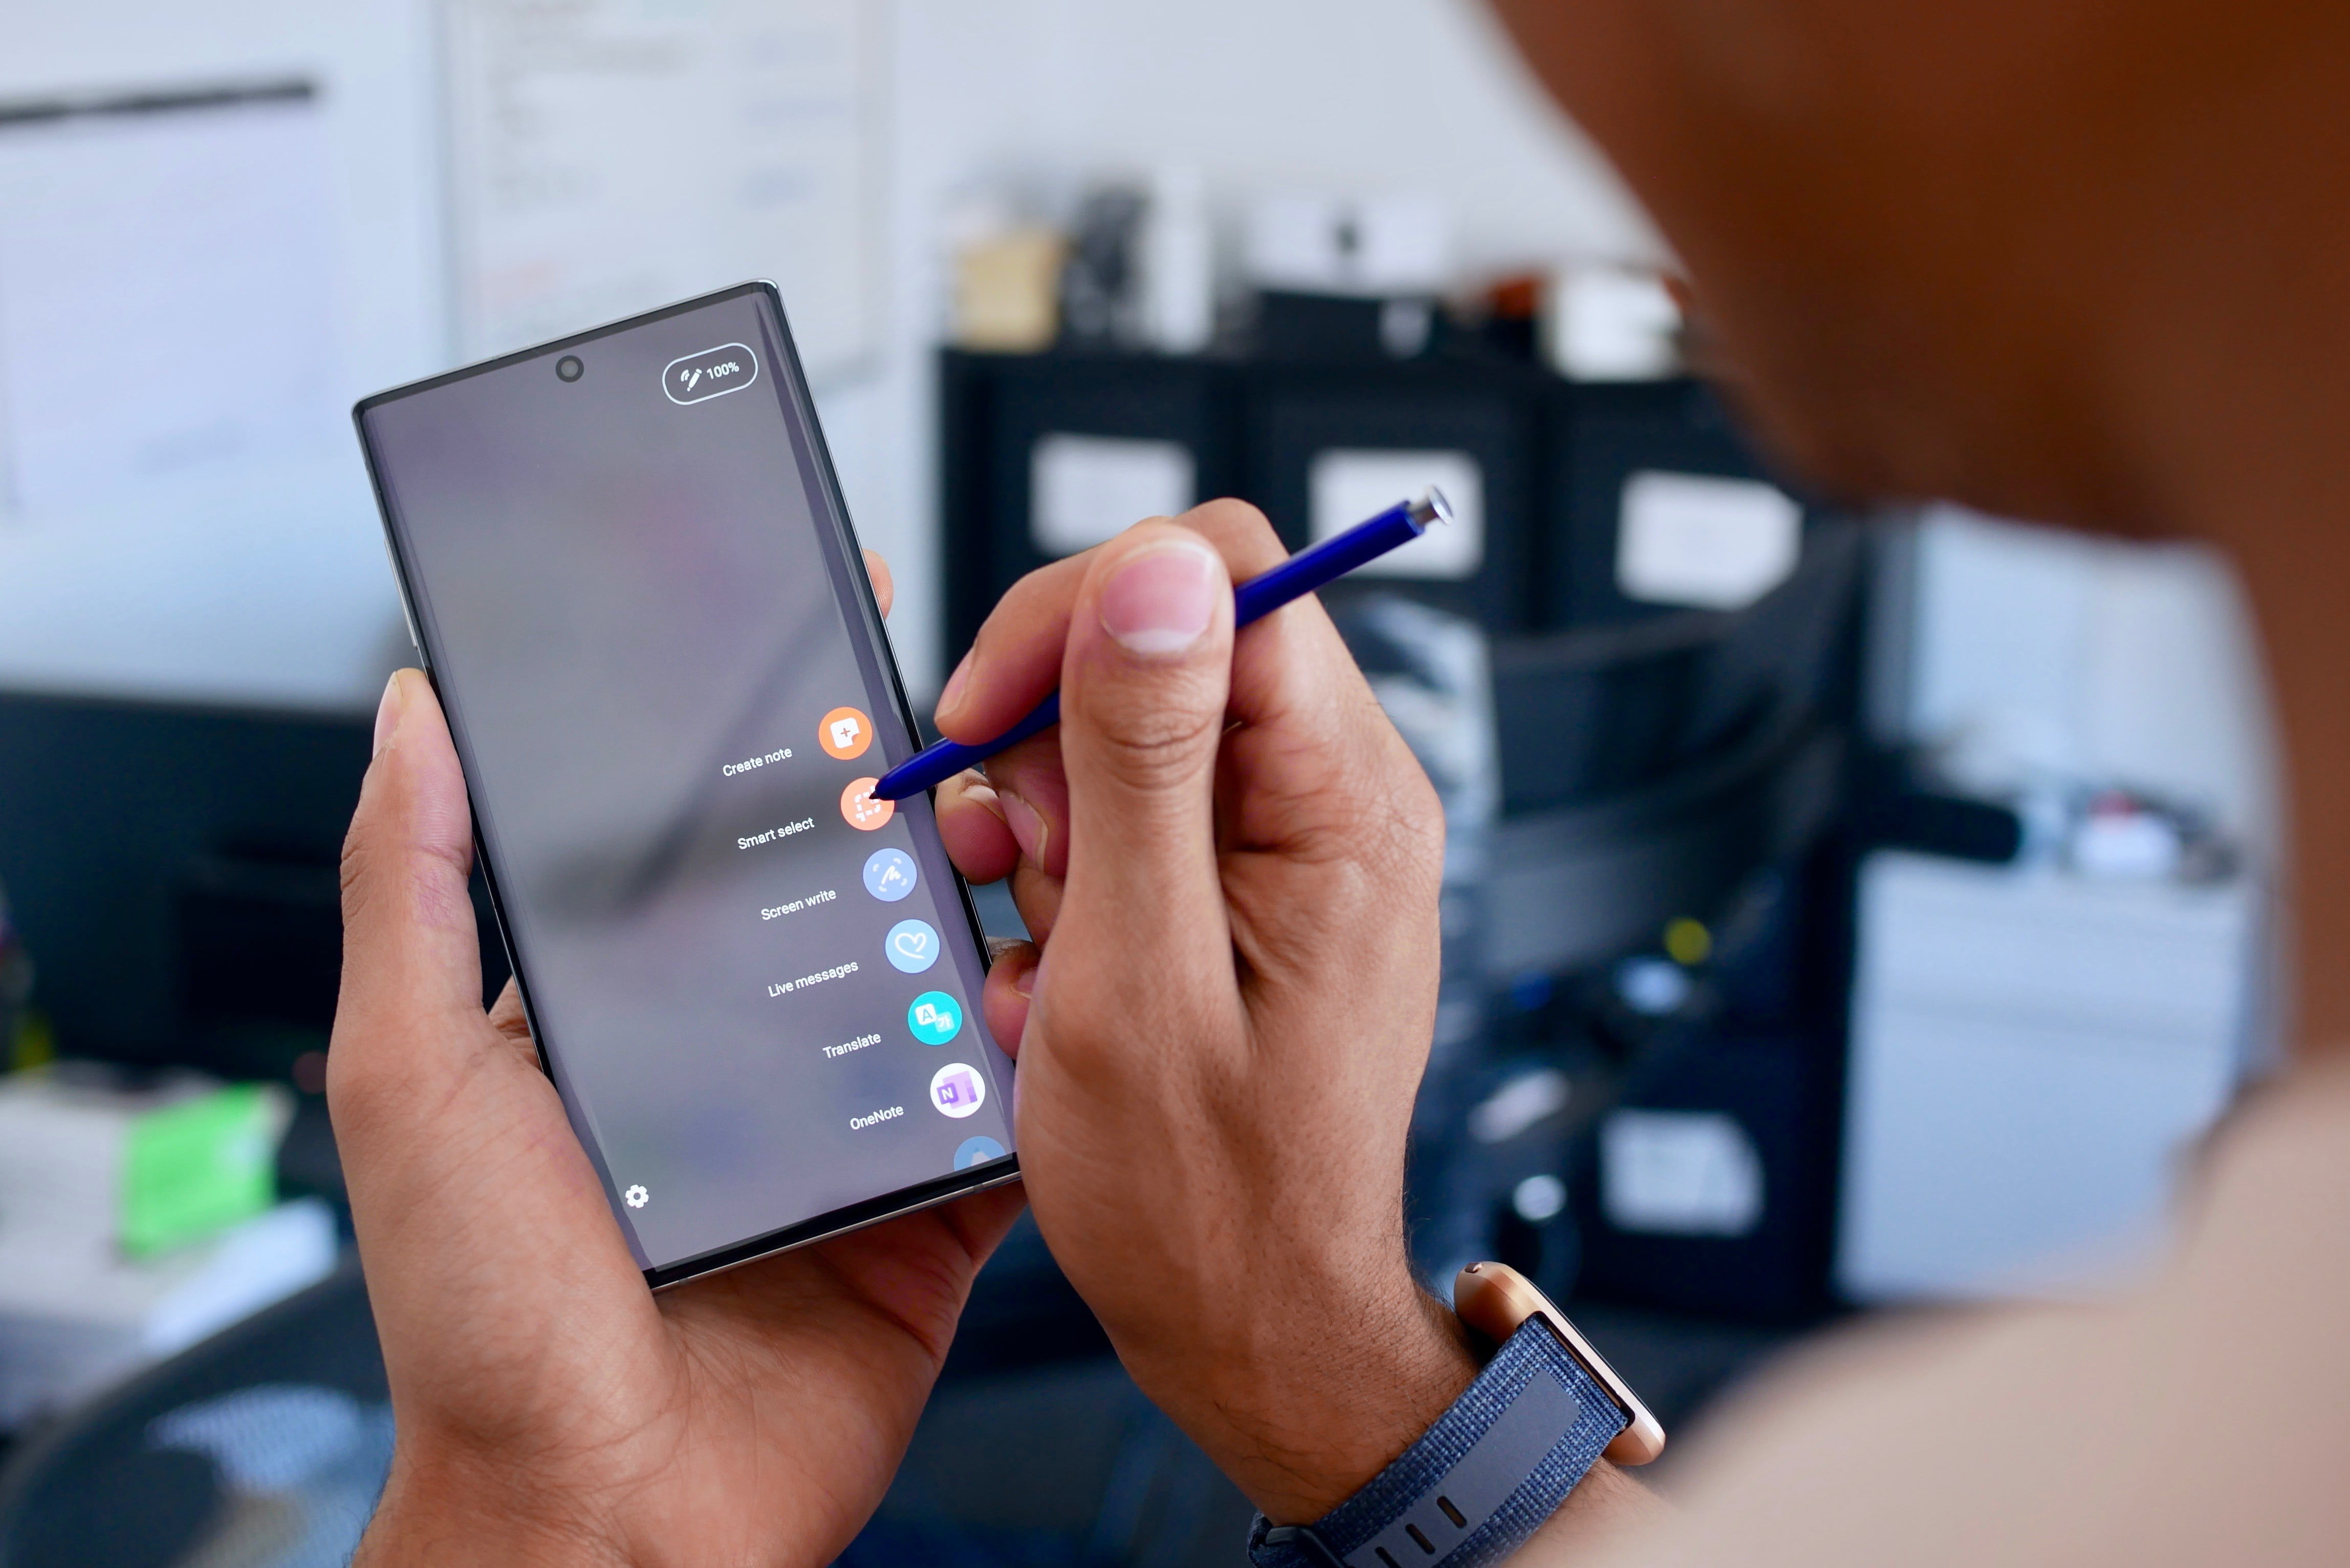 A person points the screen of their Galaxy Note 10 phone with their S Pen. We reveal all the secrets of the Galaxy Note 10 phone.